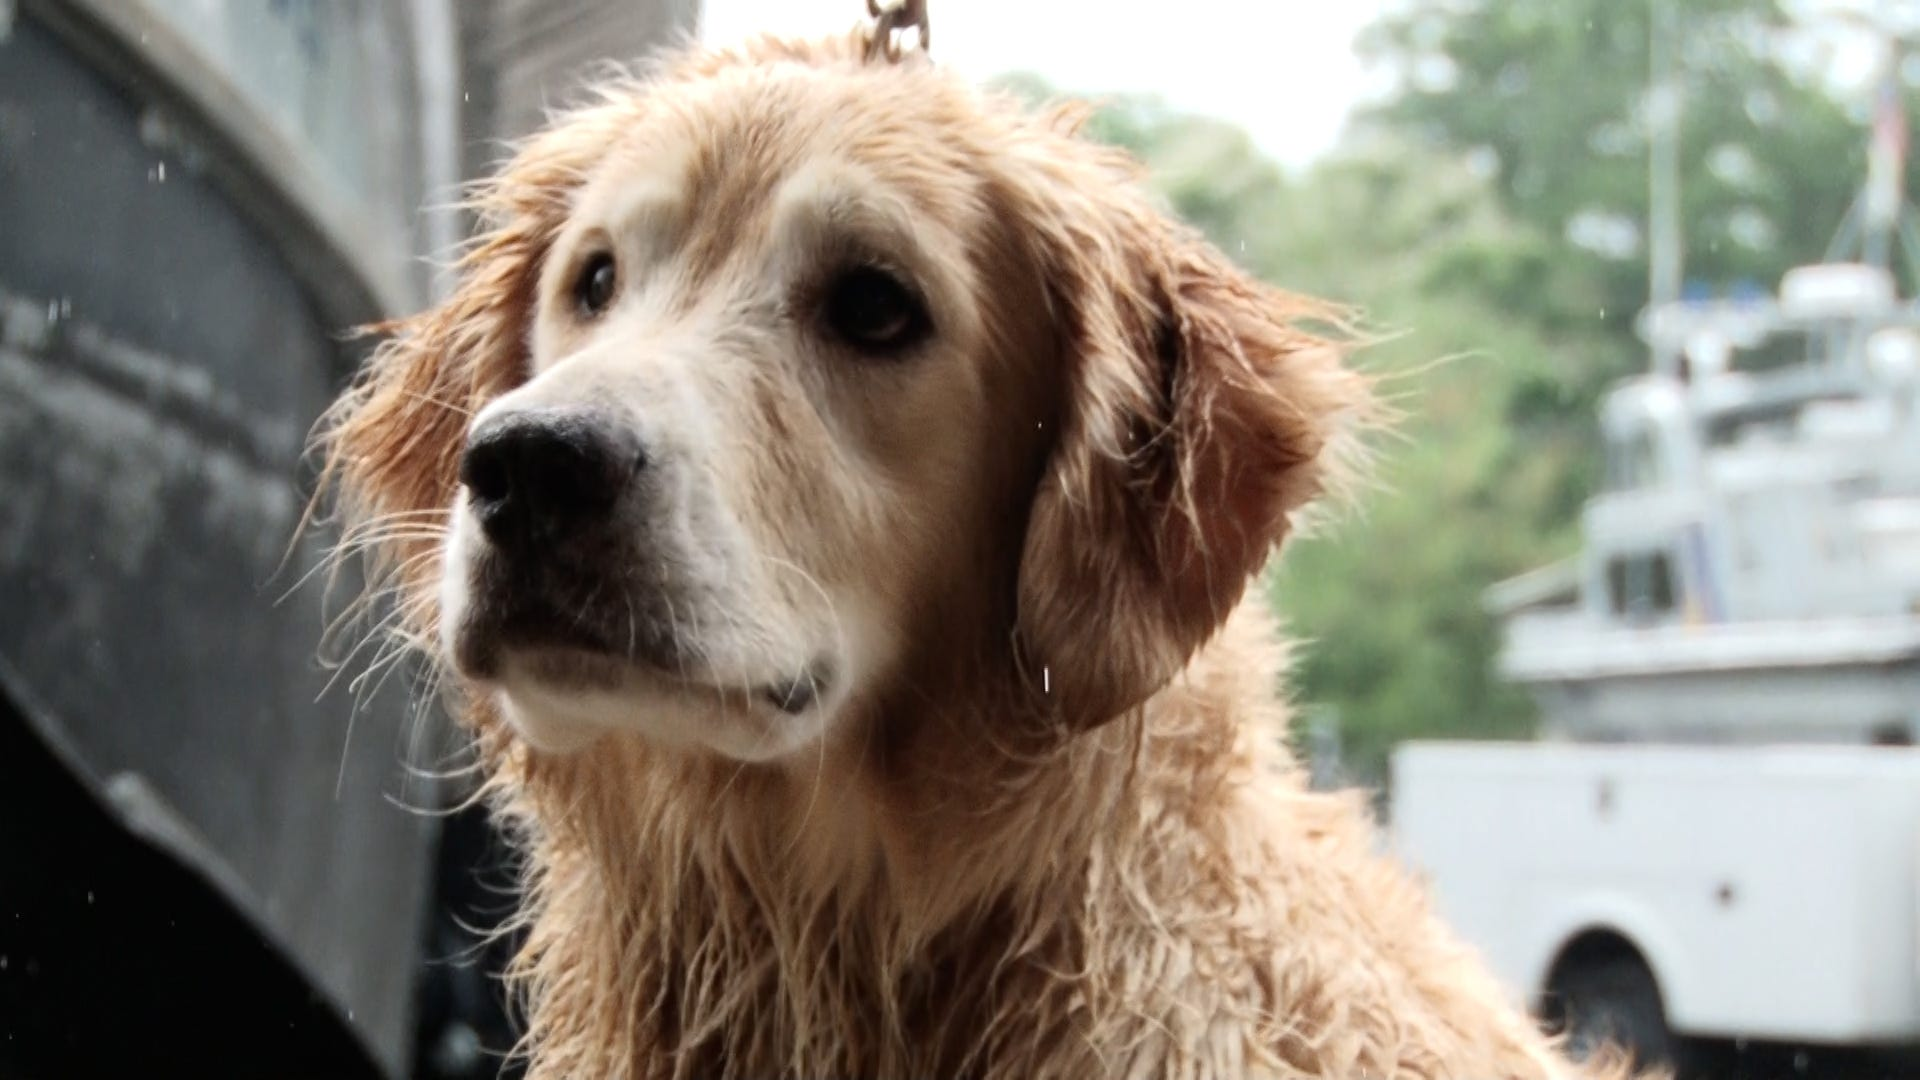 Missing for over two weeks, Chunk the Golden Retriever is found